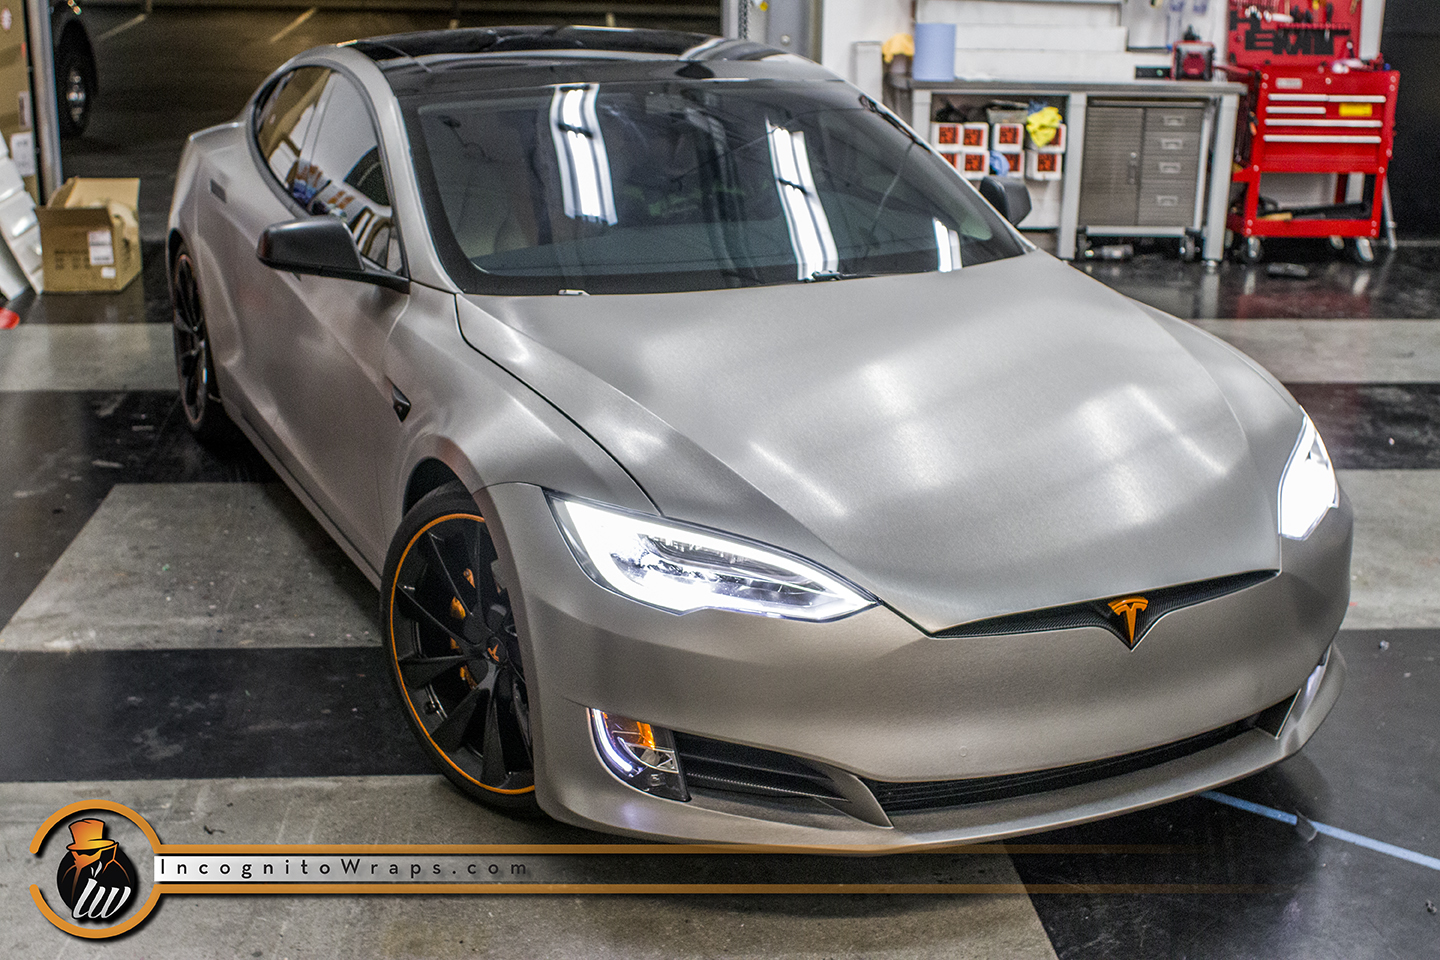 Tesla Model S - Brushed Titanium with Orange Accents